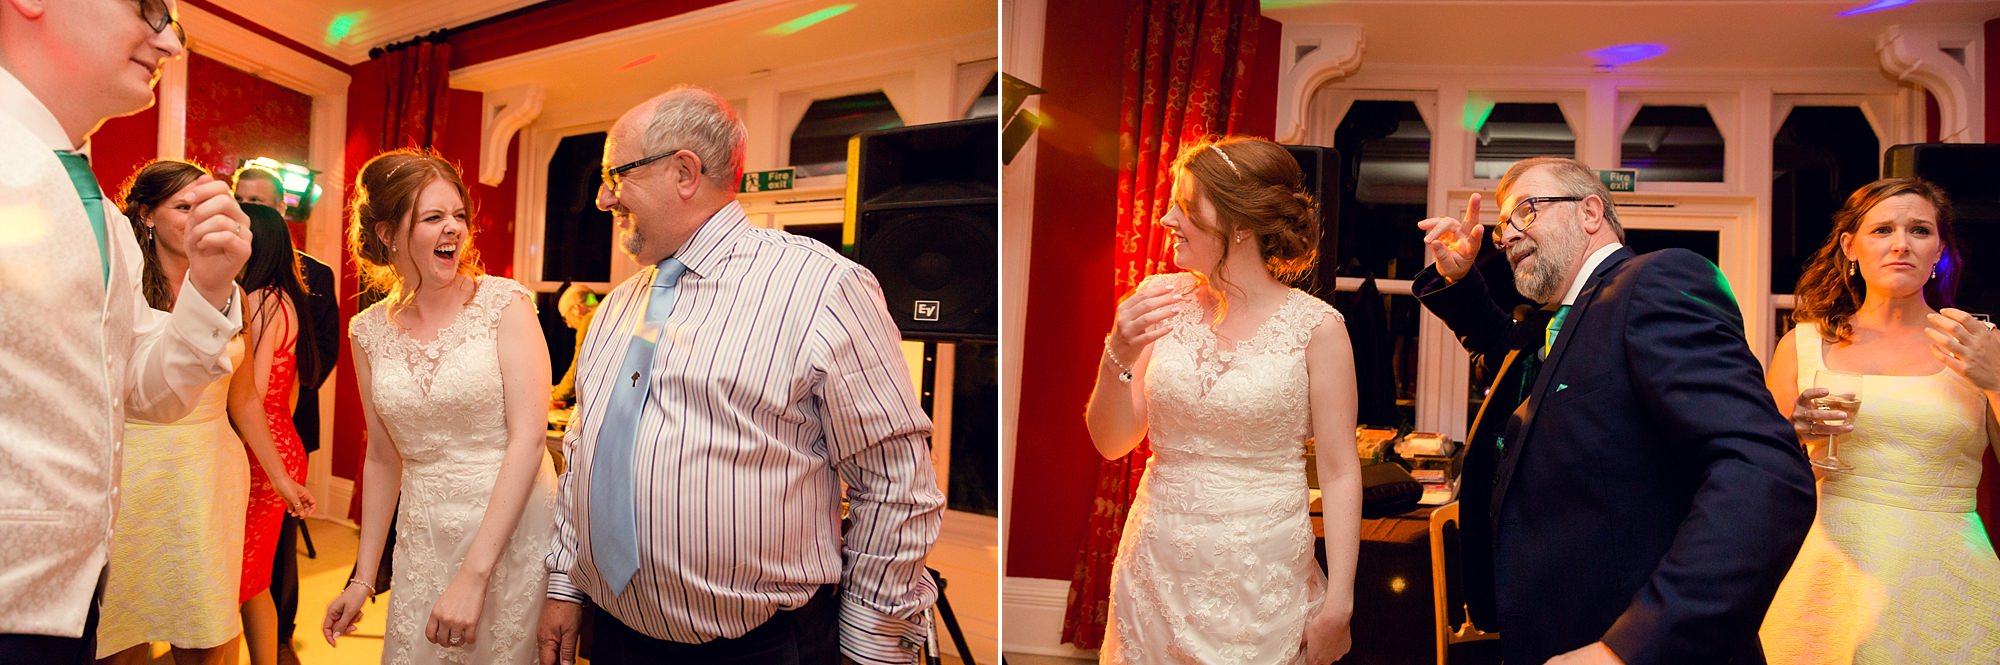 Canon Lane Chichester wedding guests party time